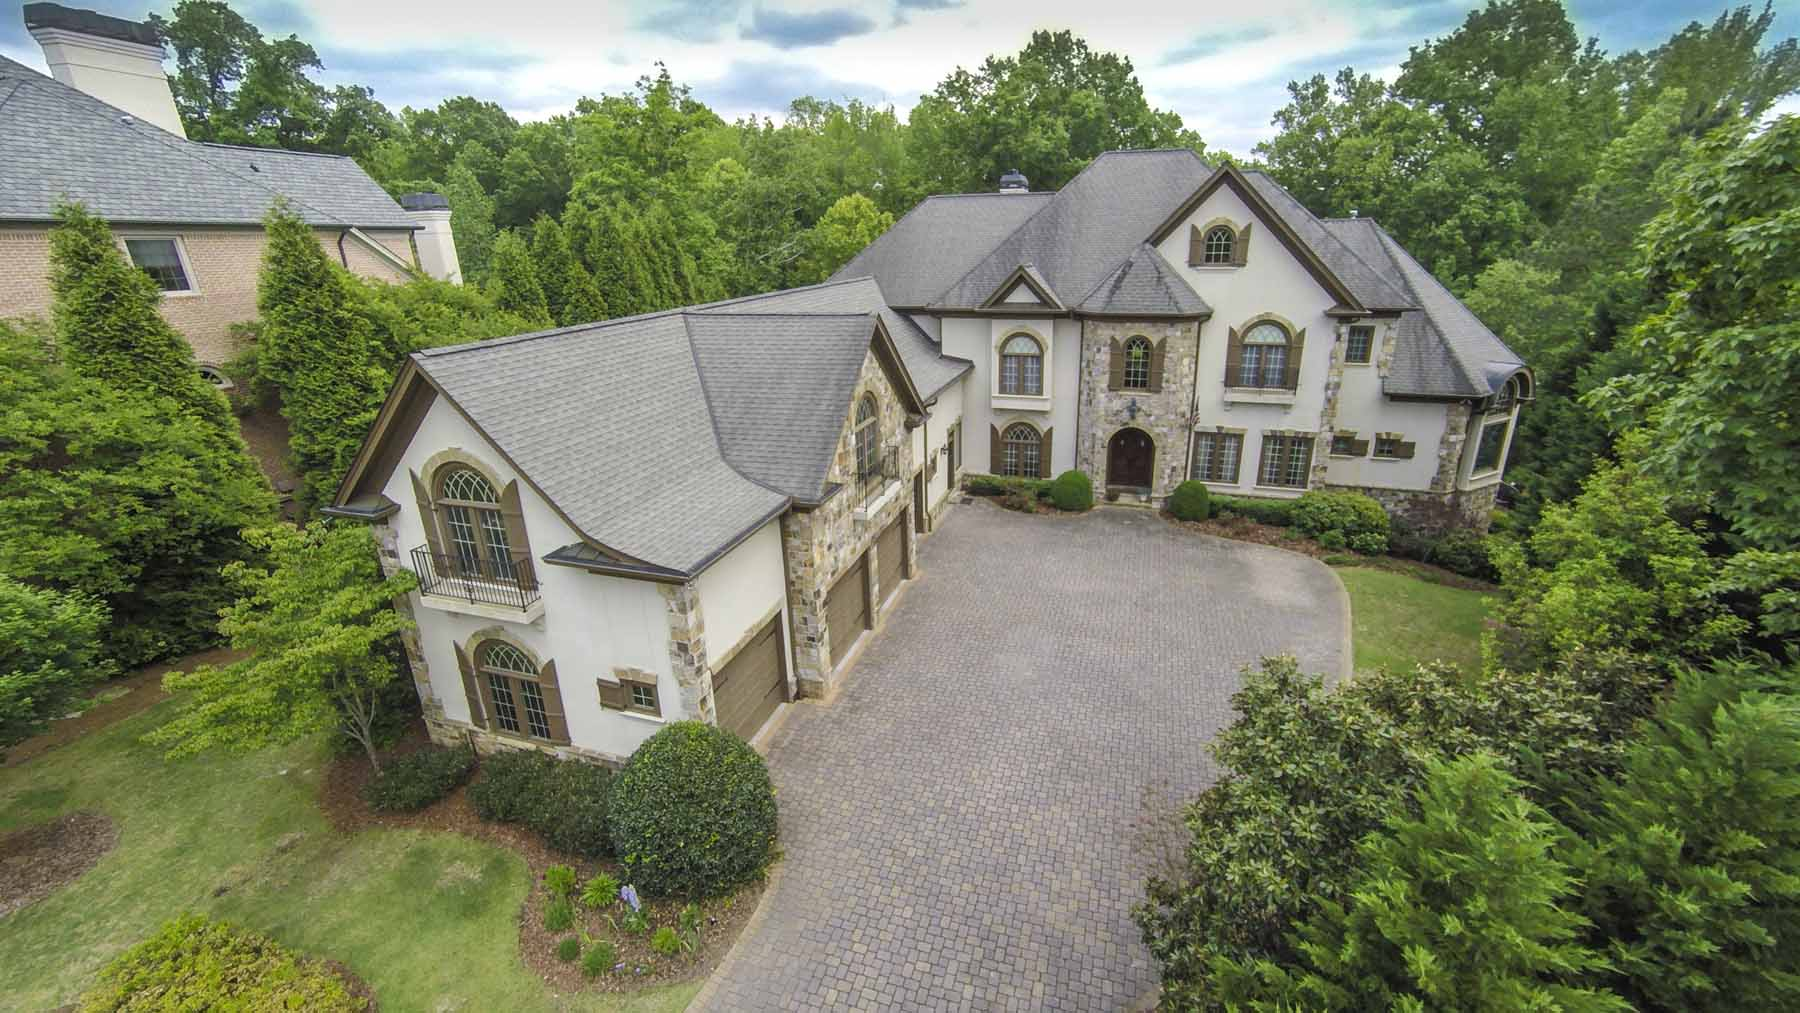 Single Family Home for Active at Stunning Home Meets Modern Updates on the Sparkling Chatahoochee River 500 Covington Cove Alpharetta, Georgia 30022 United States